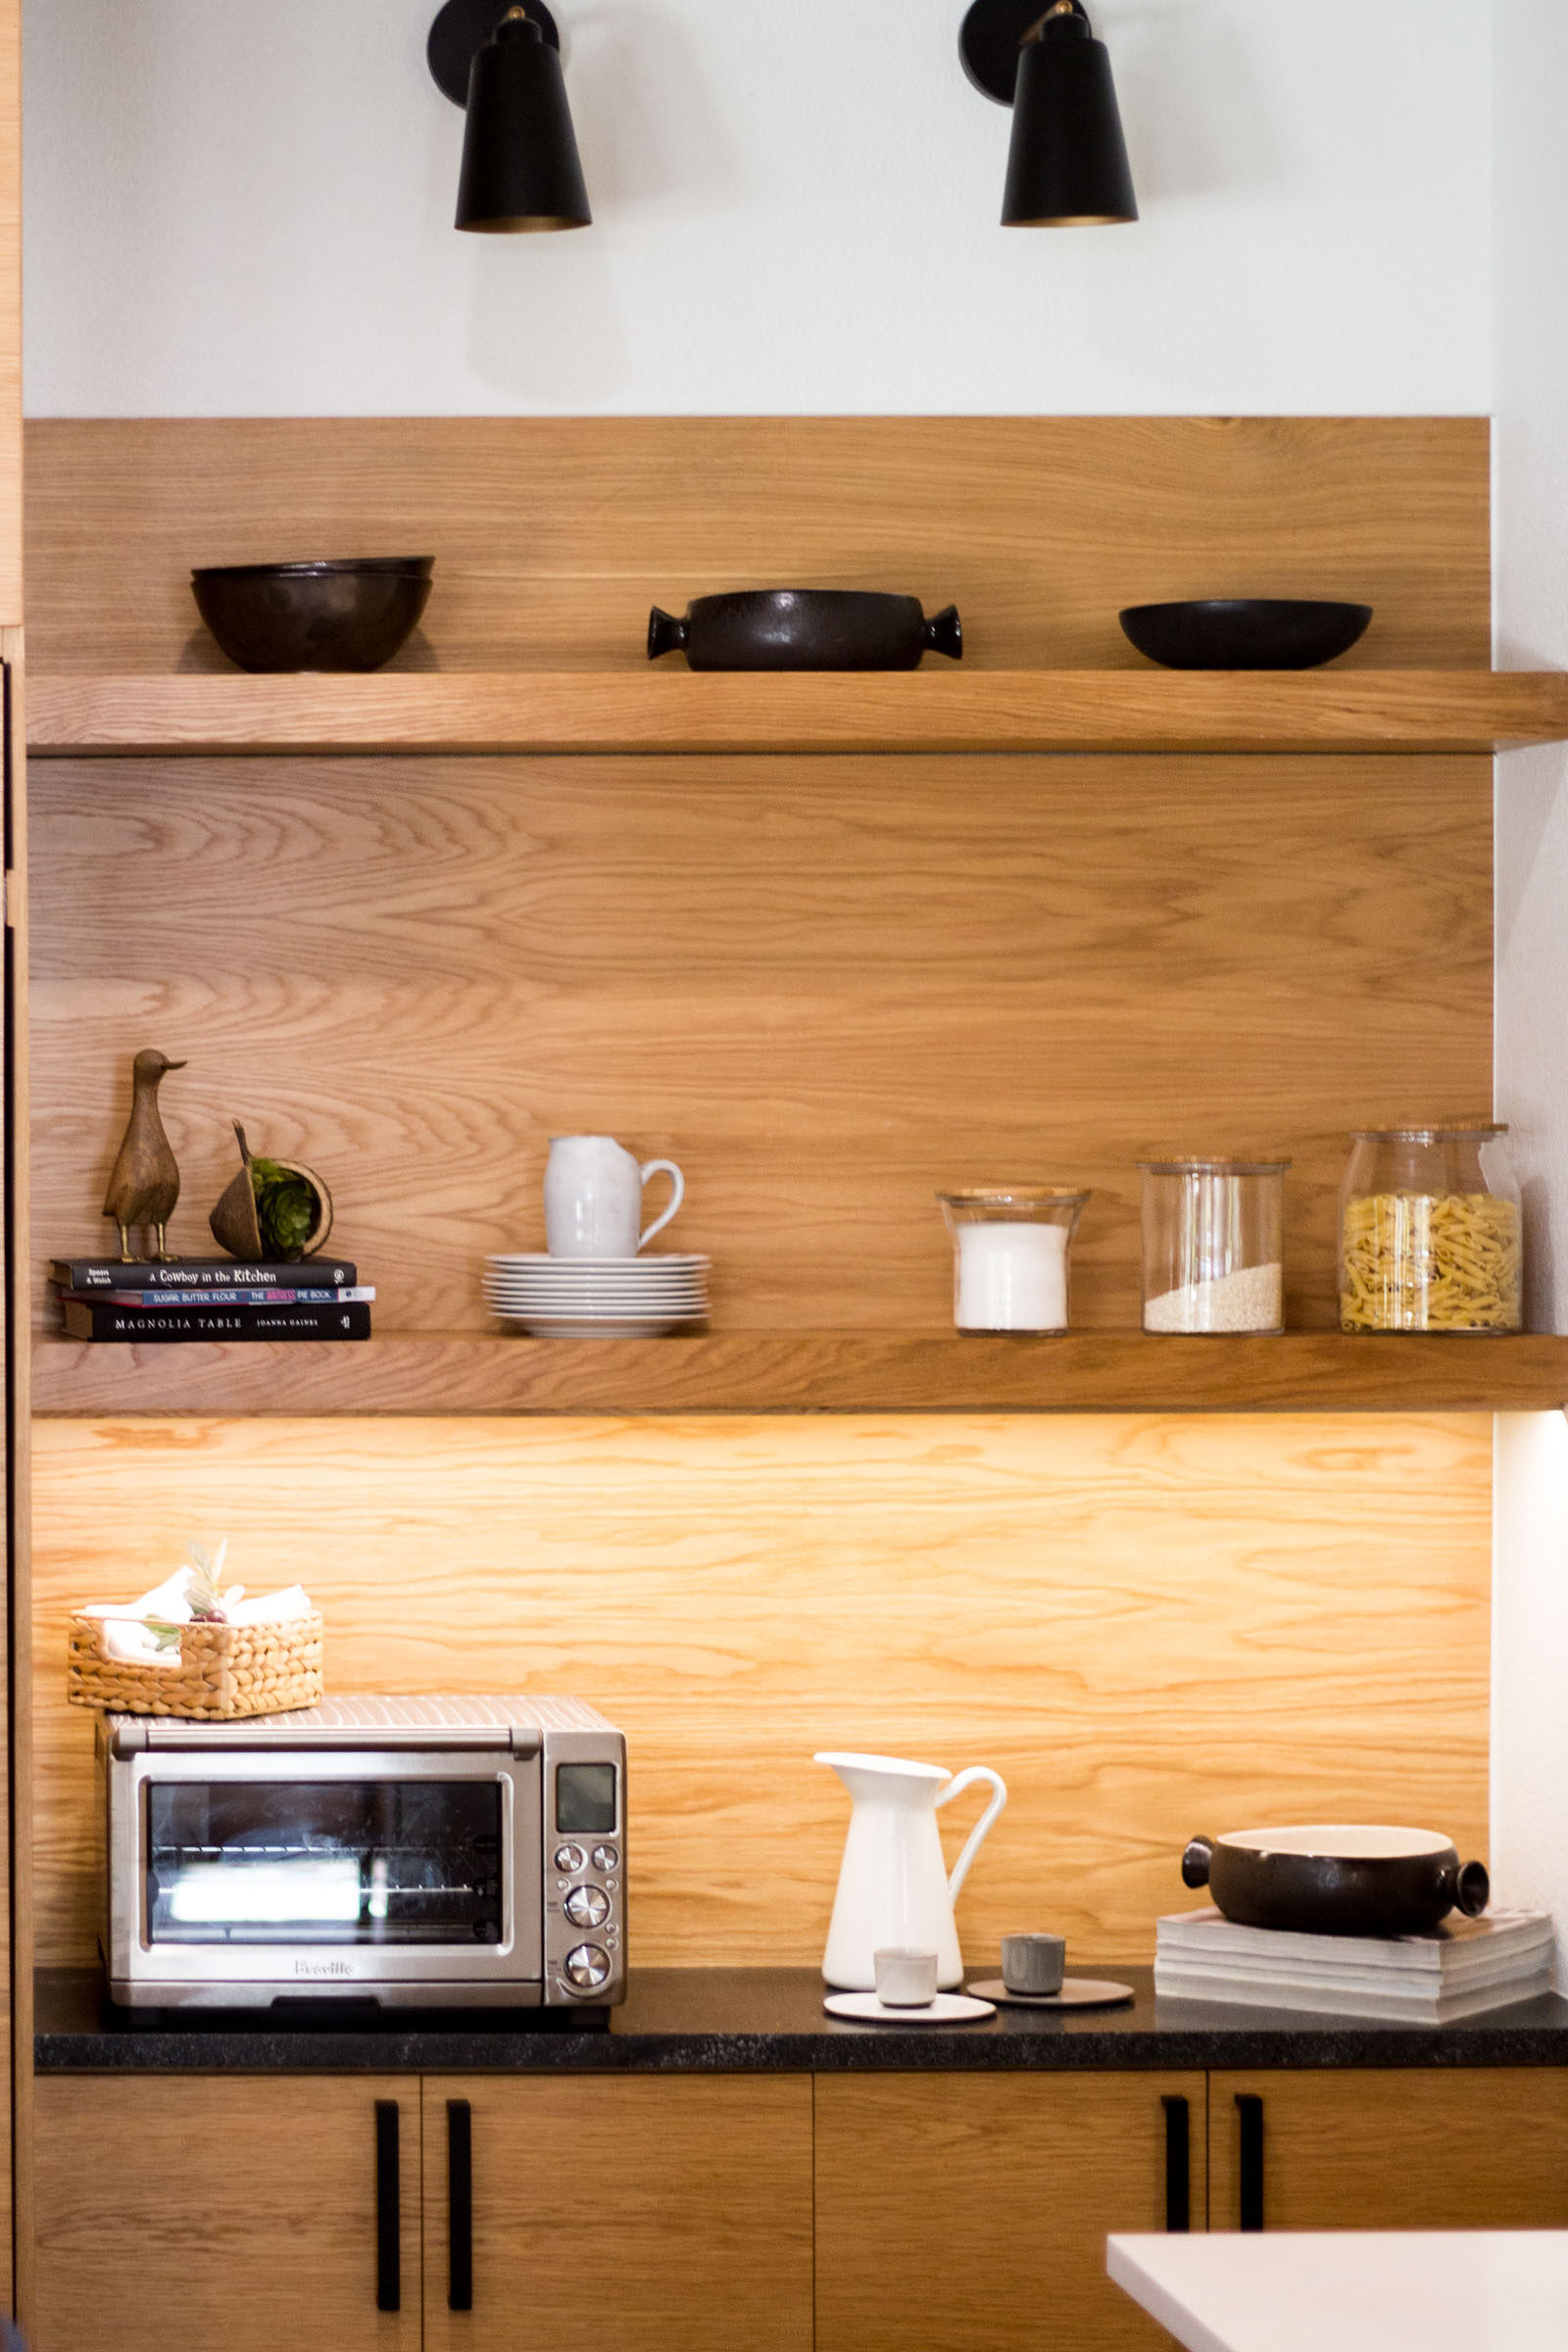 Exposed blonde wood shelves with decor and cookware, toaster oven, plates and under lighting.